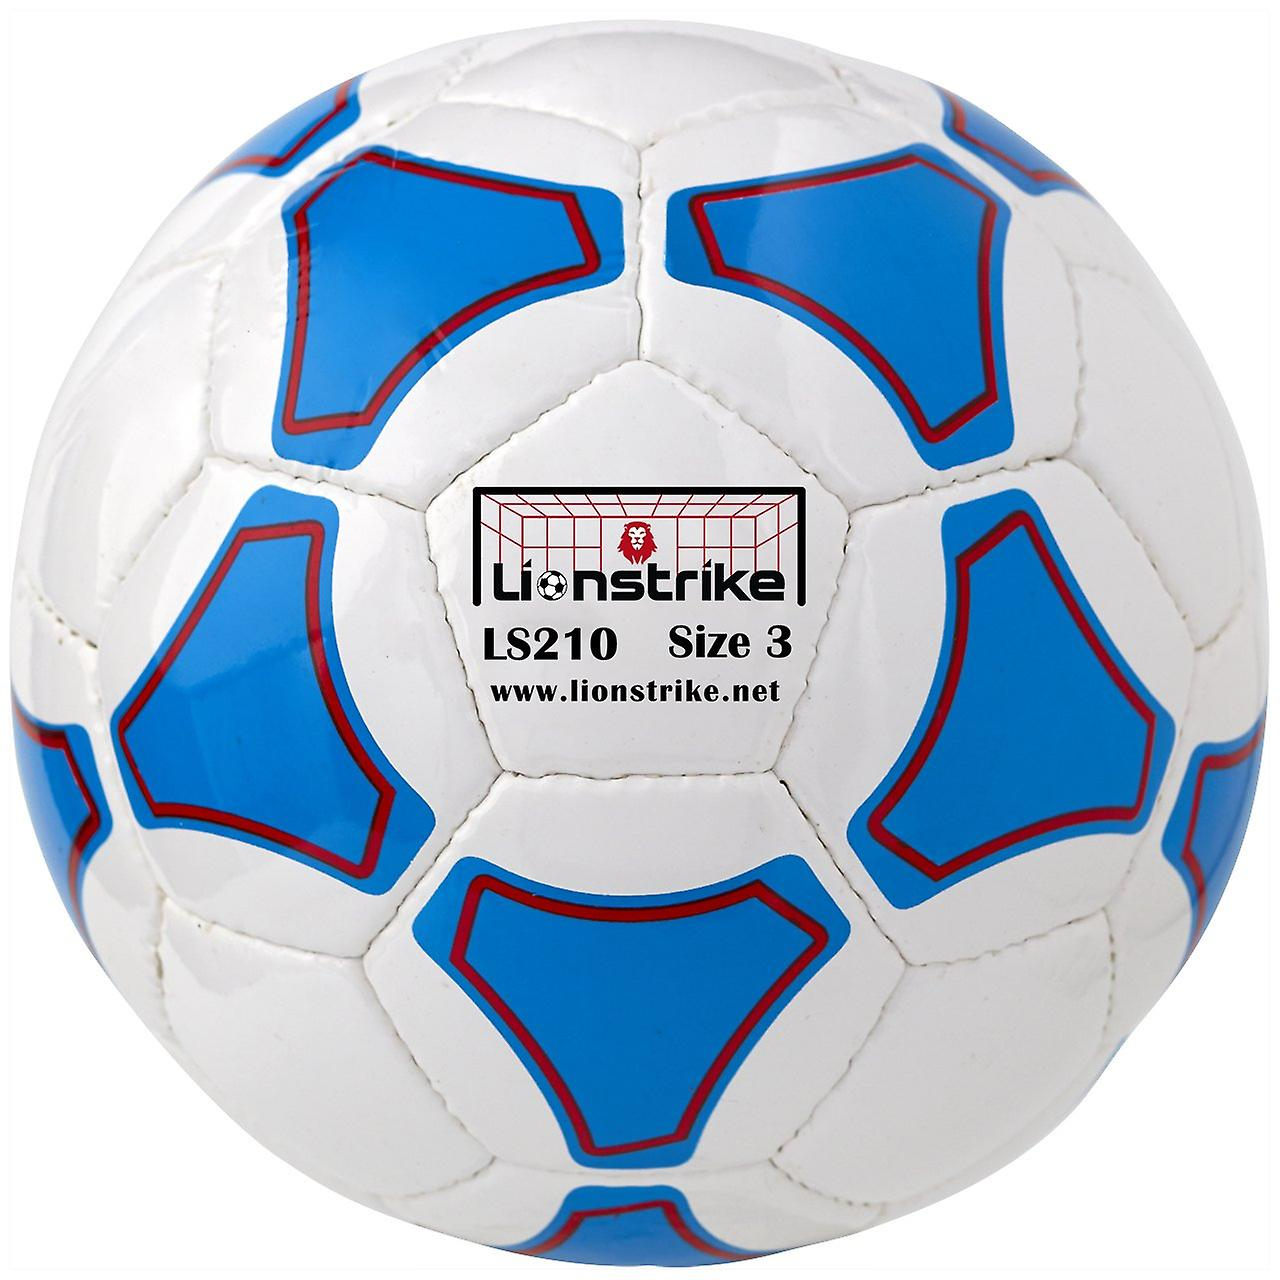 Lionstrike 210 leather football (size 3) - white